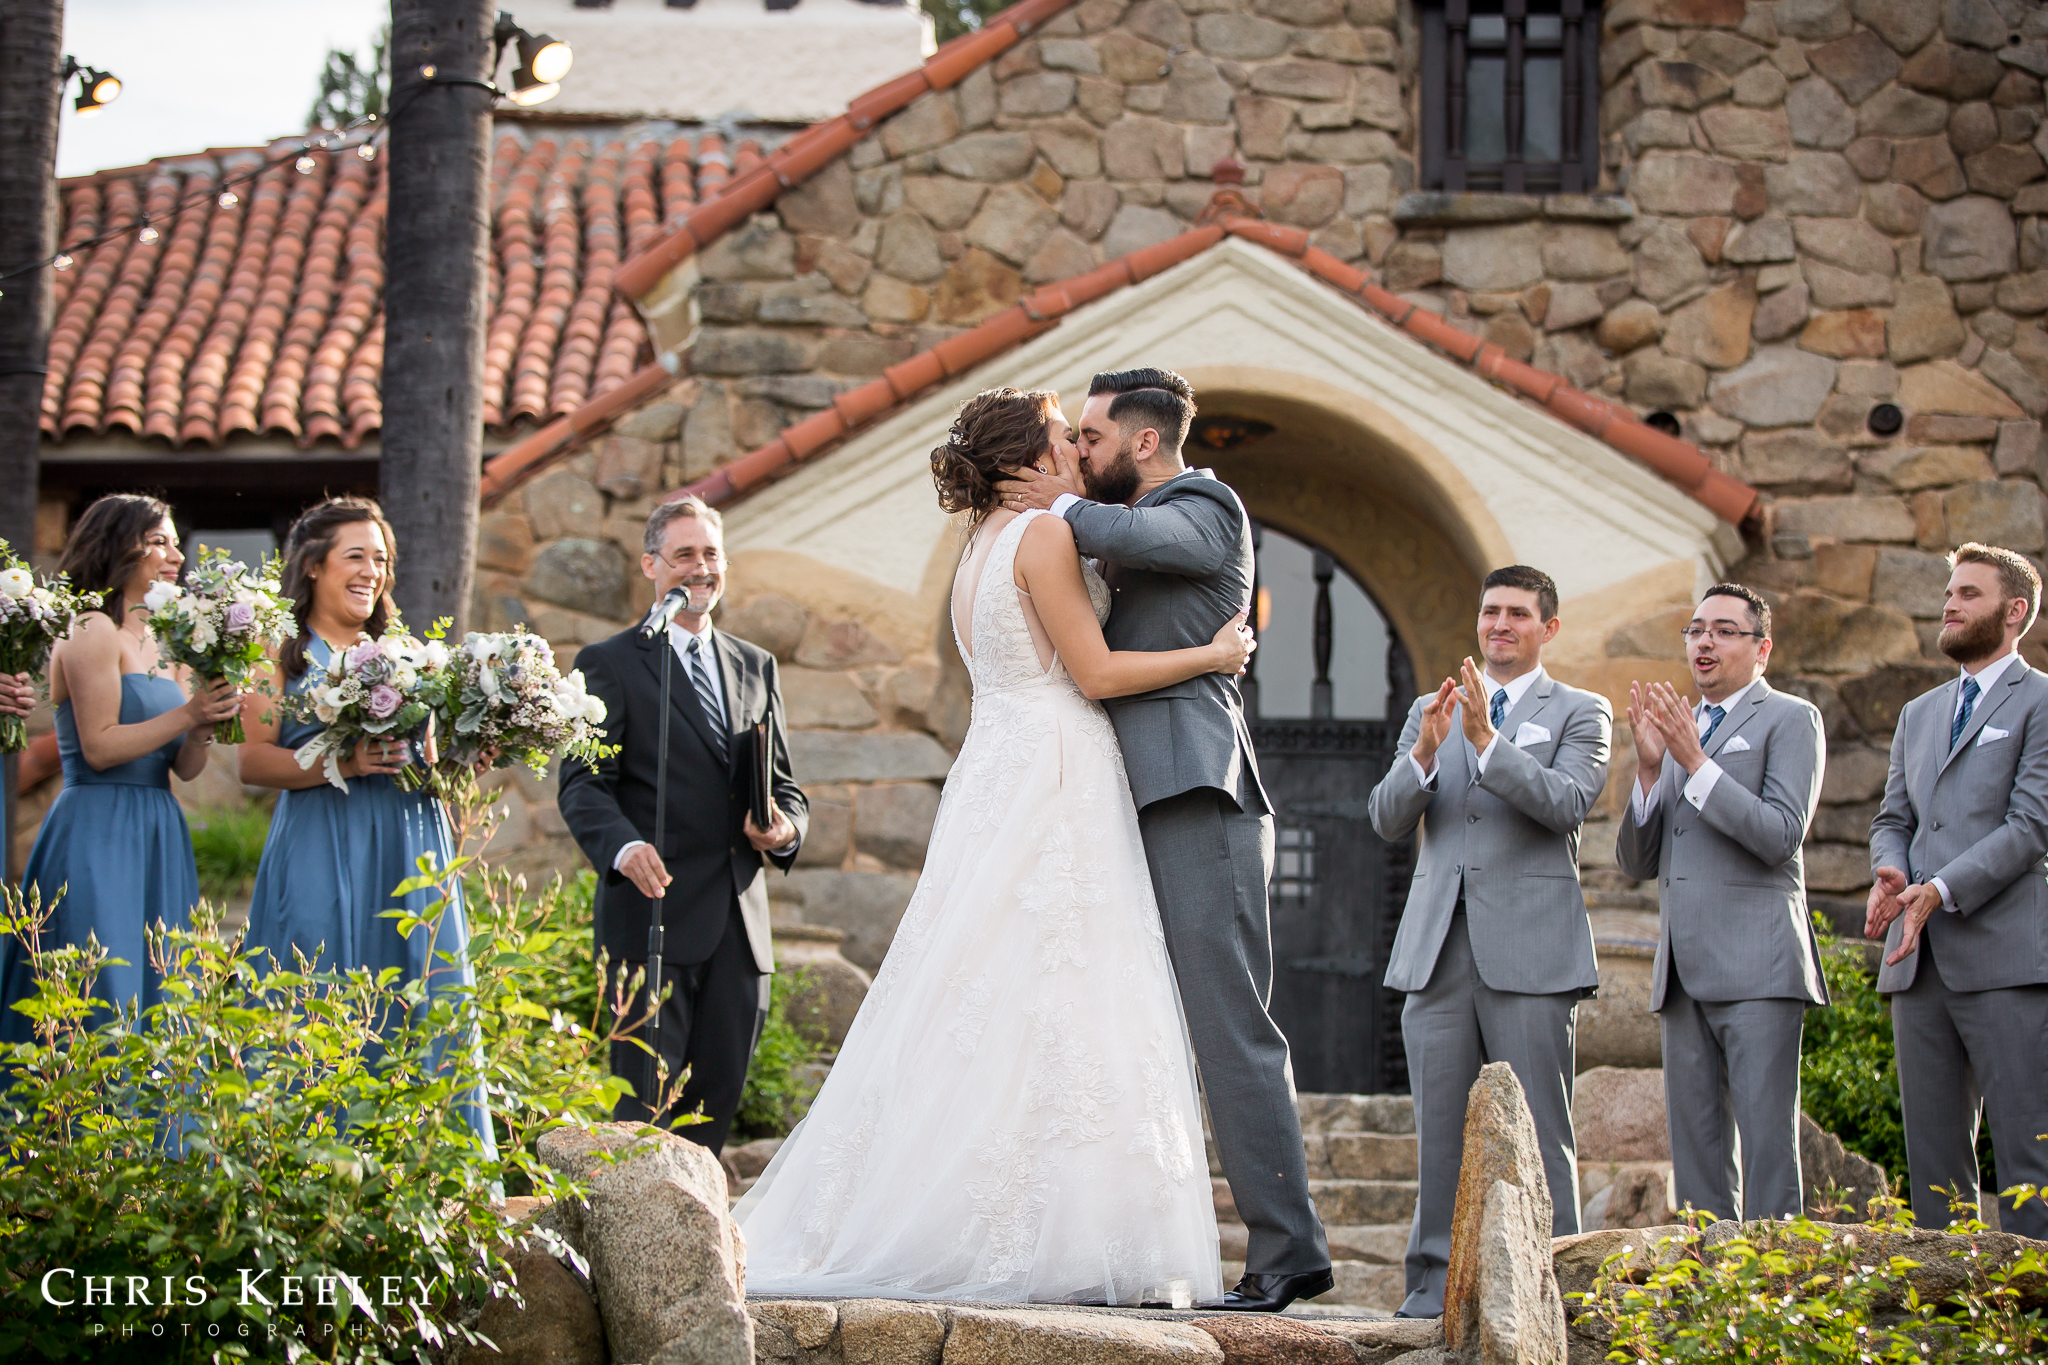 mt-woodson-castle-bride-groom-first-kiss.jpg